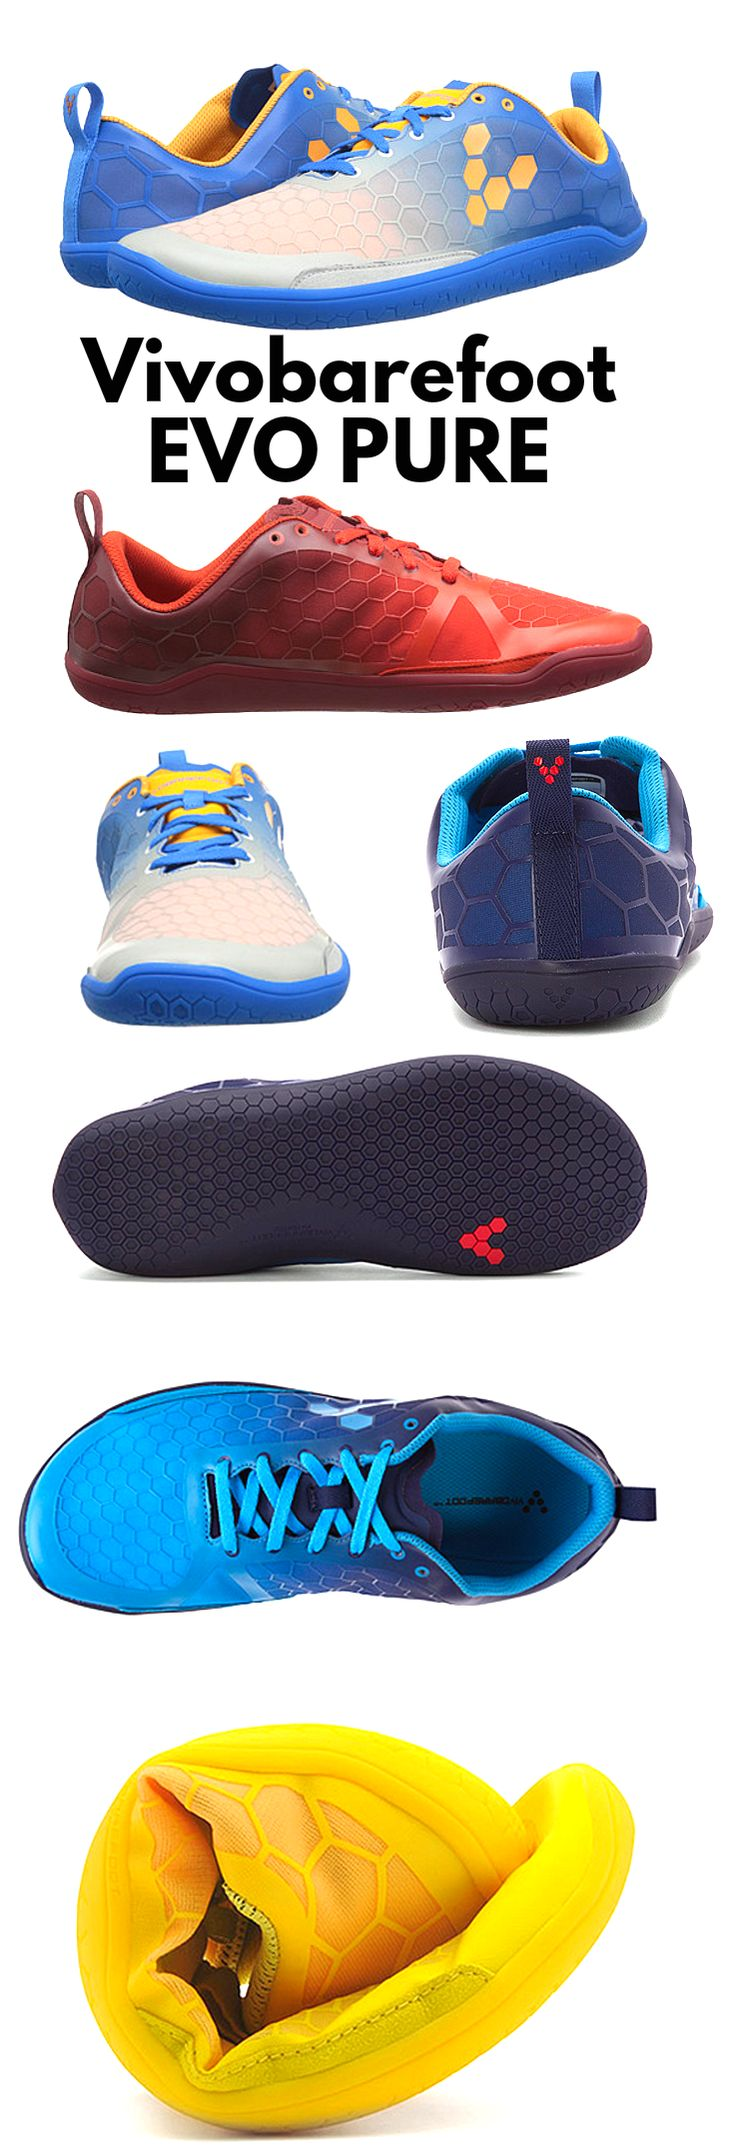 Vivobarefoot EVO PURE Review for Forefoot Running